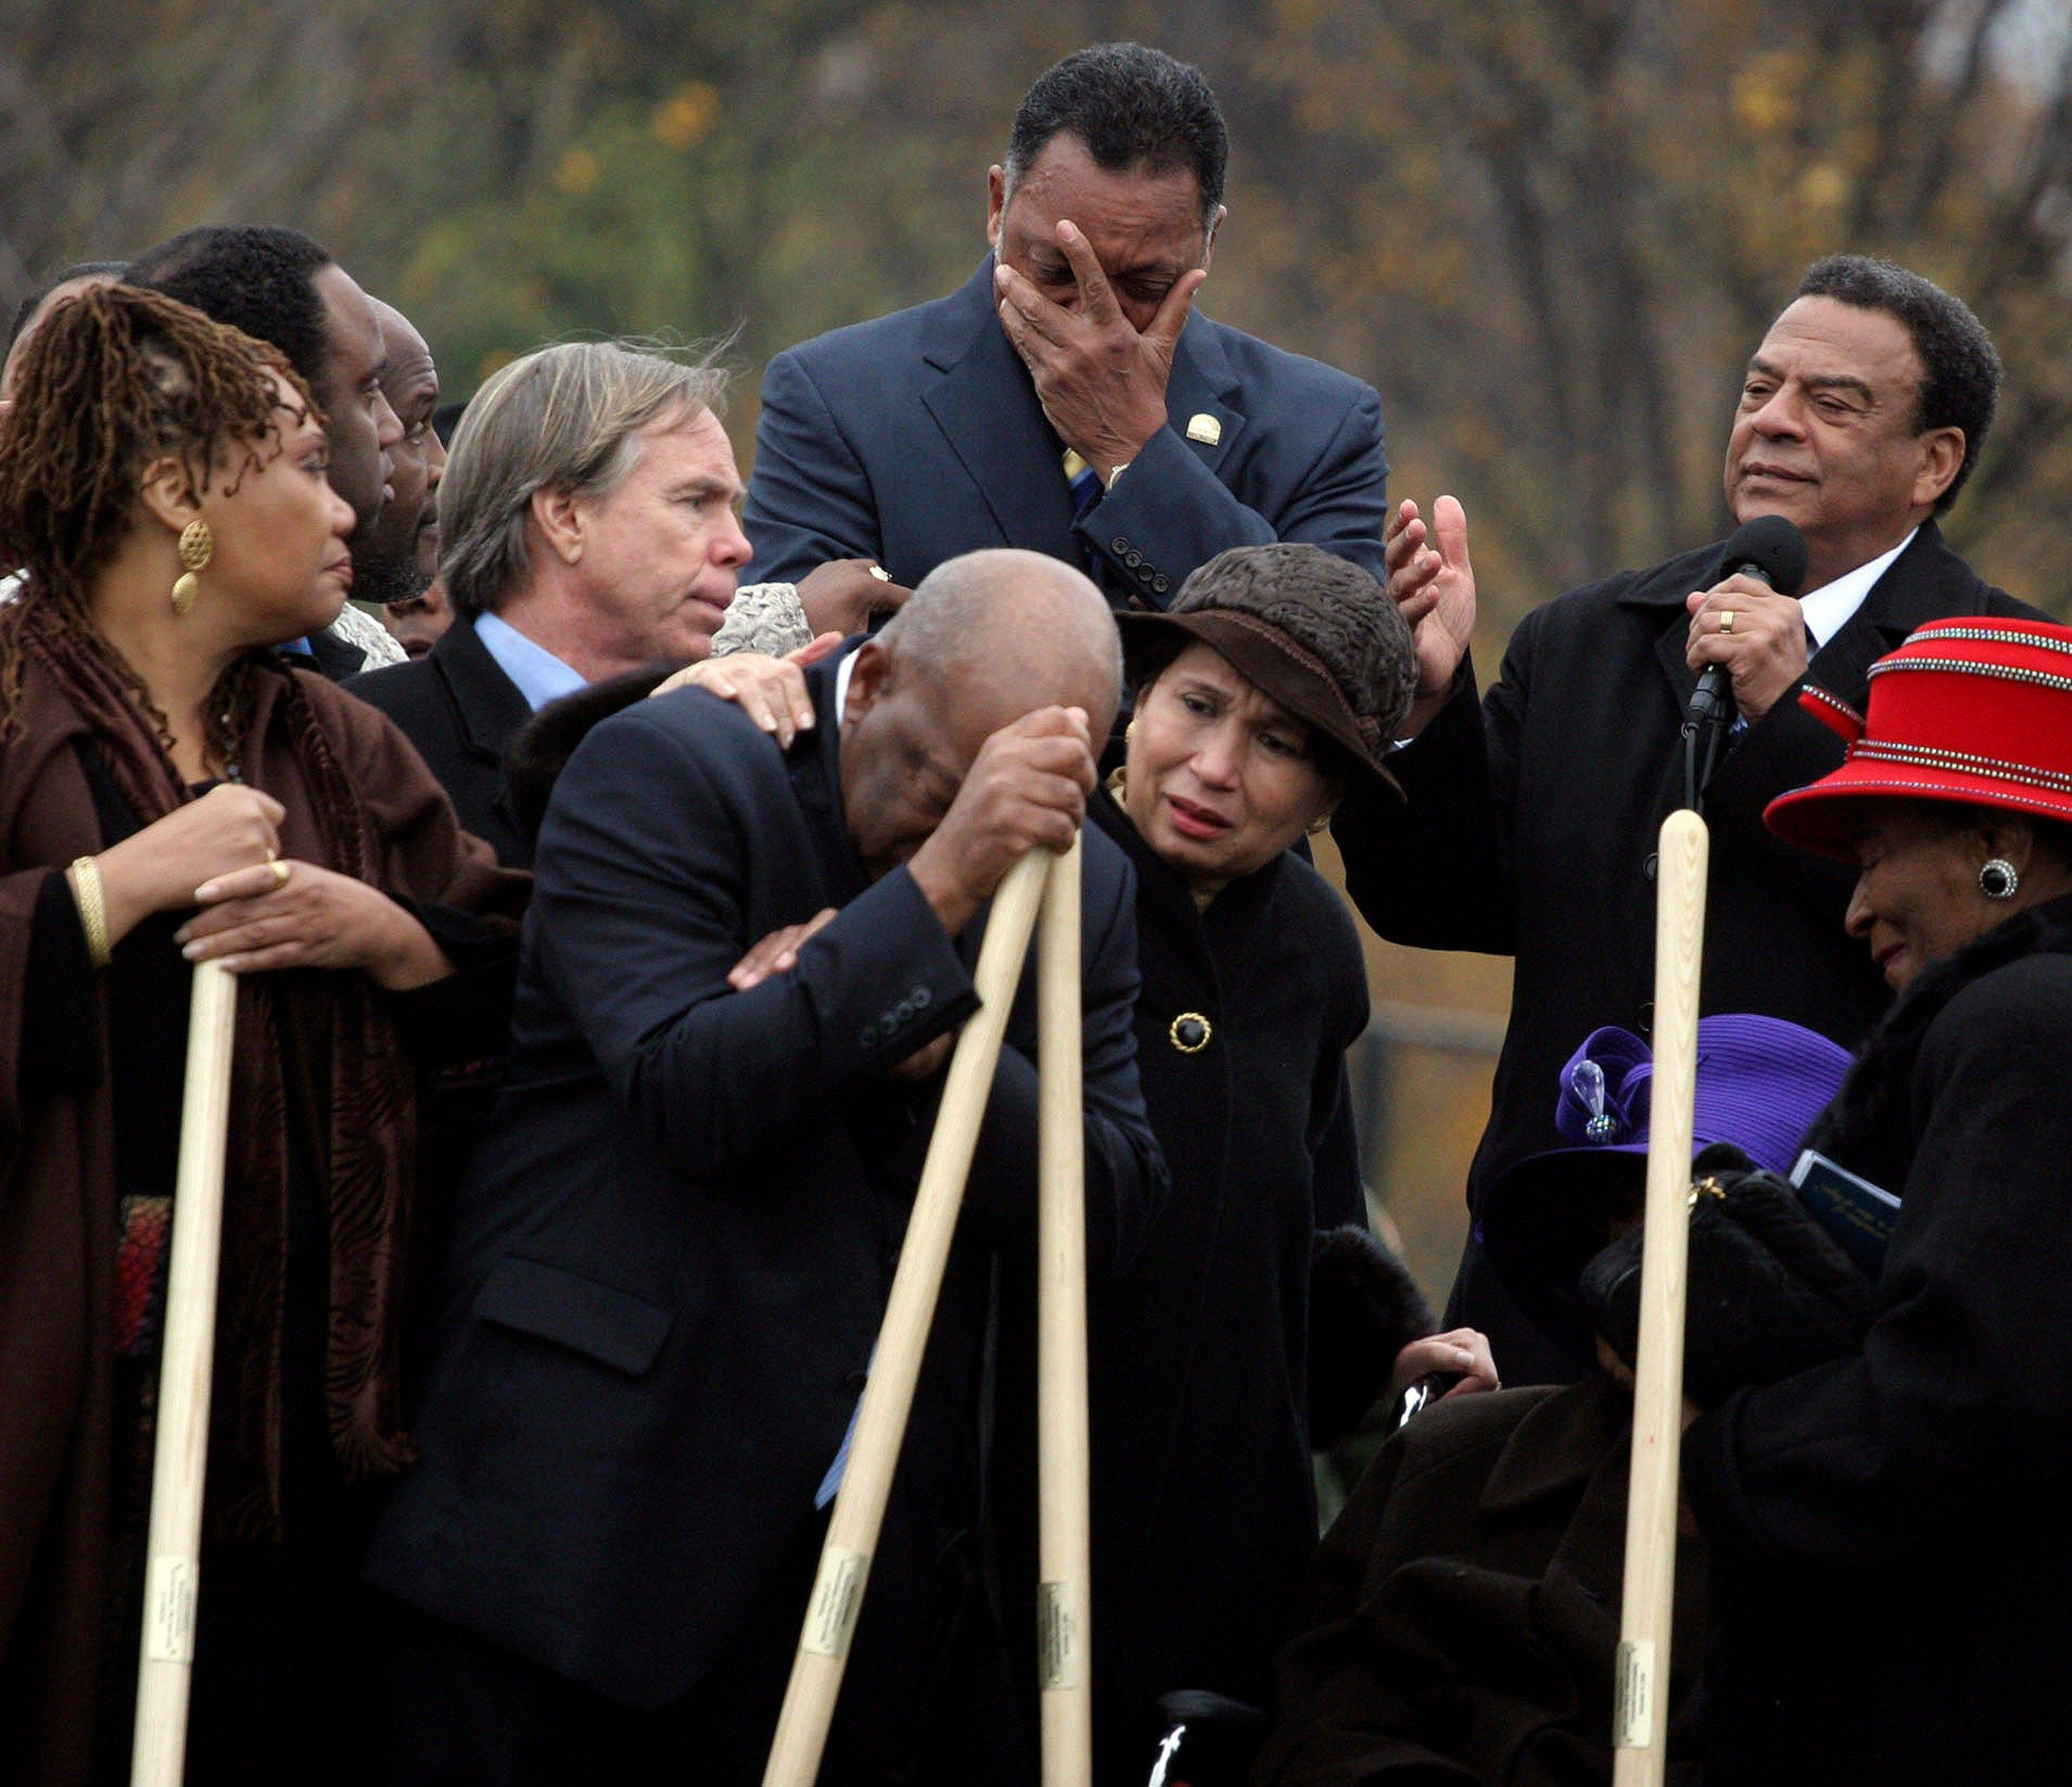 The Rev. Jesse Jackson, top center, and Congressman John Lewis, leaning on shovel, becoming emotional as Ambassador Andrew Young, top right, speaks about the significance of the late Martin Luther King Jr. during the groundbreaking for King's memorial on the National Mall in Washington in 2006